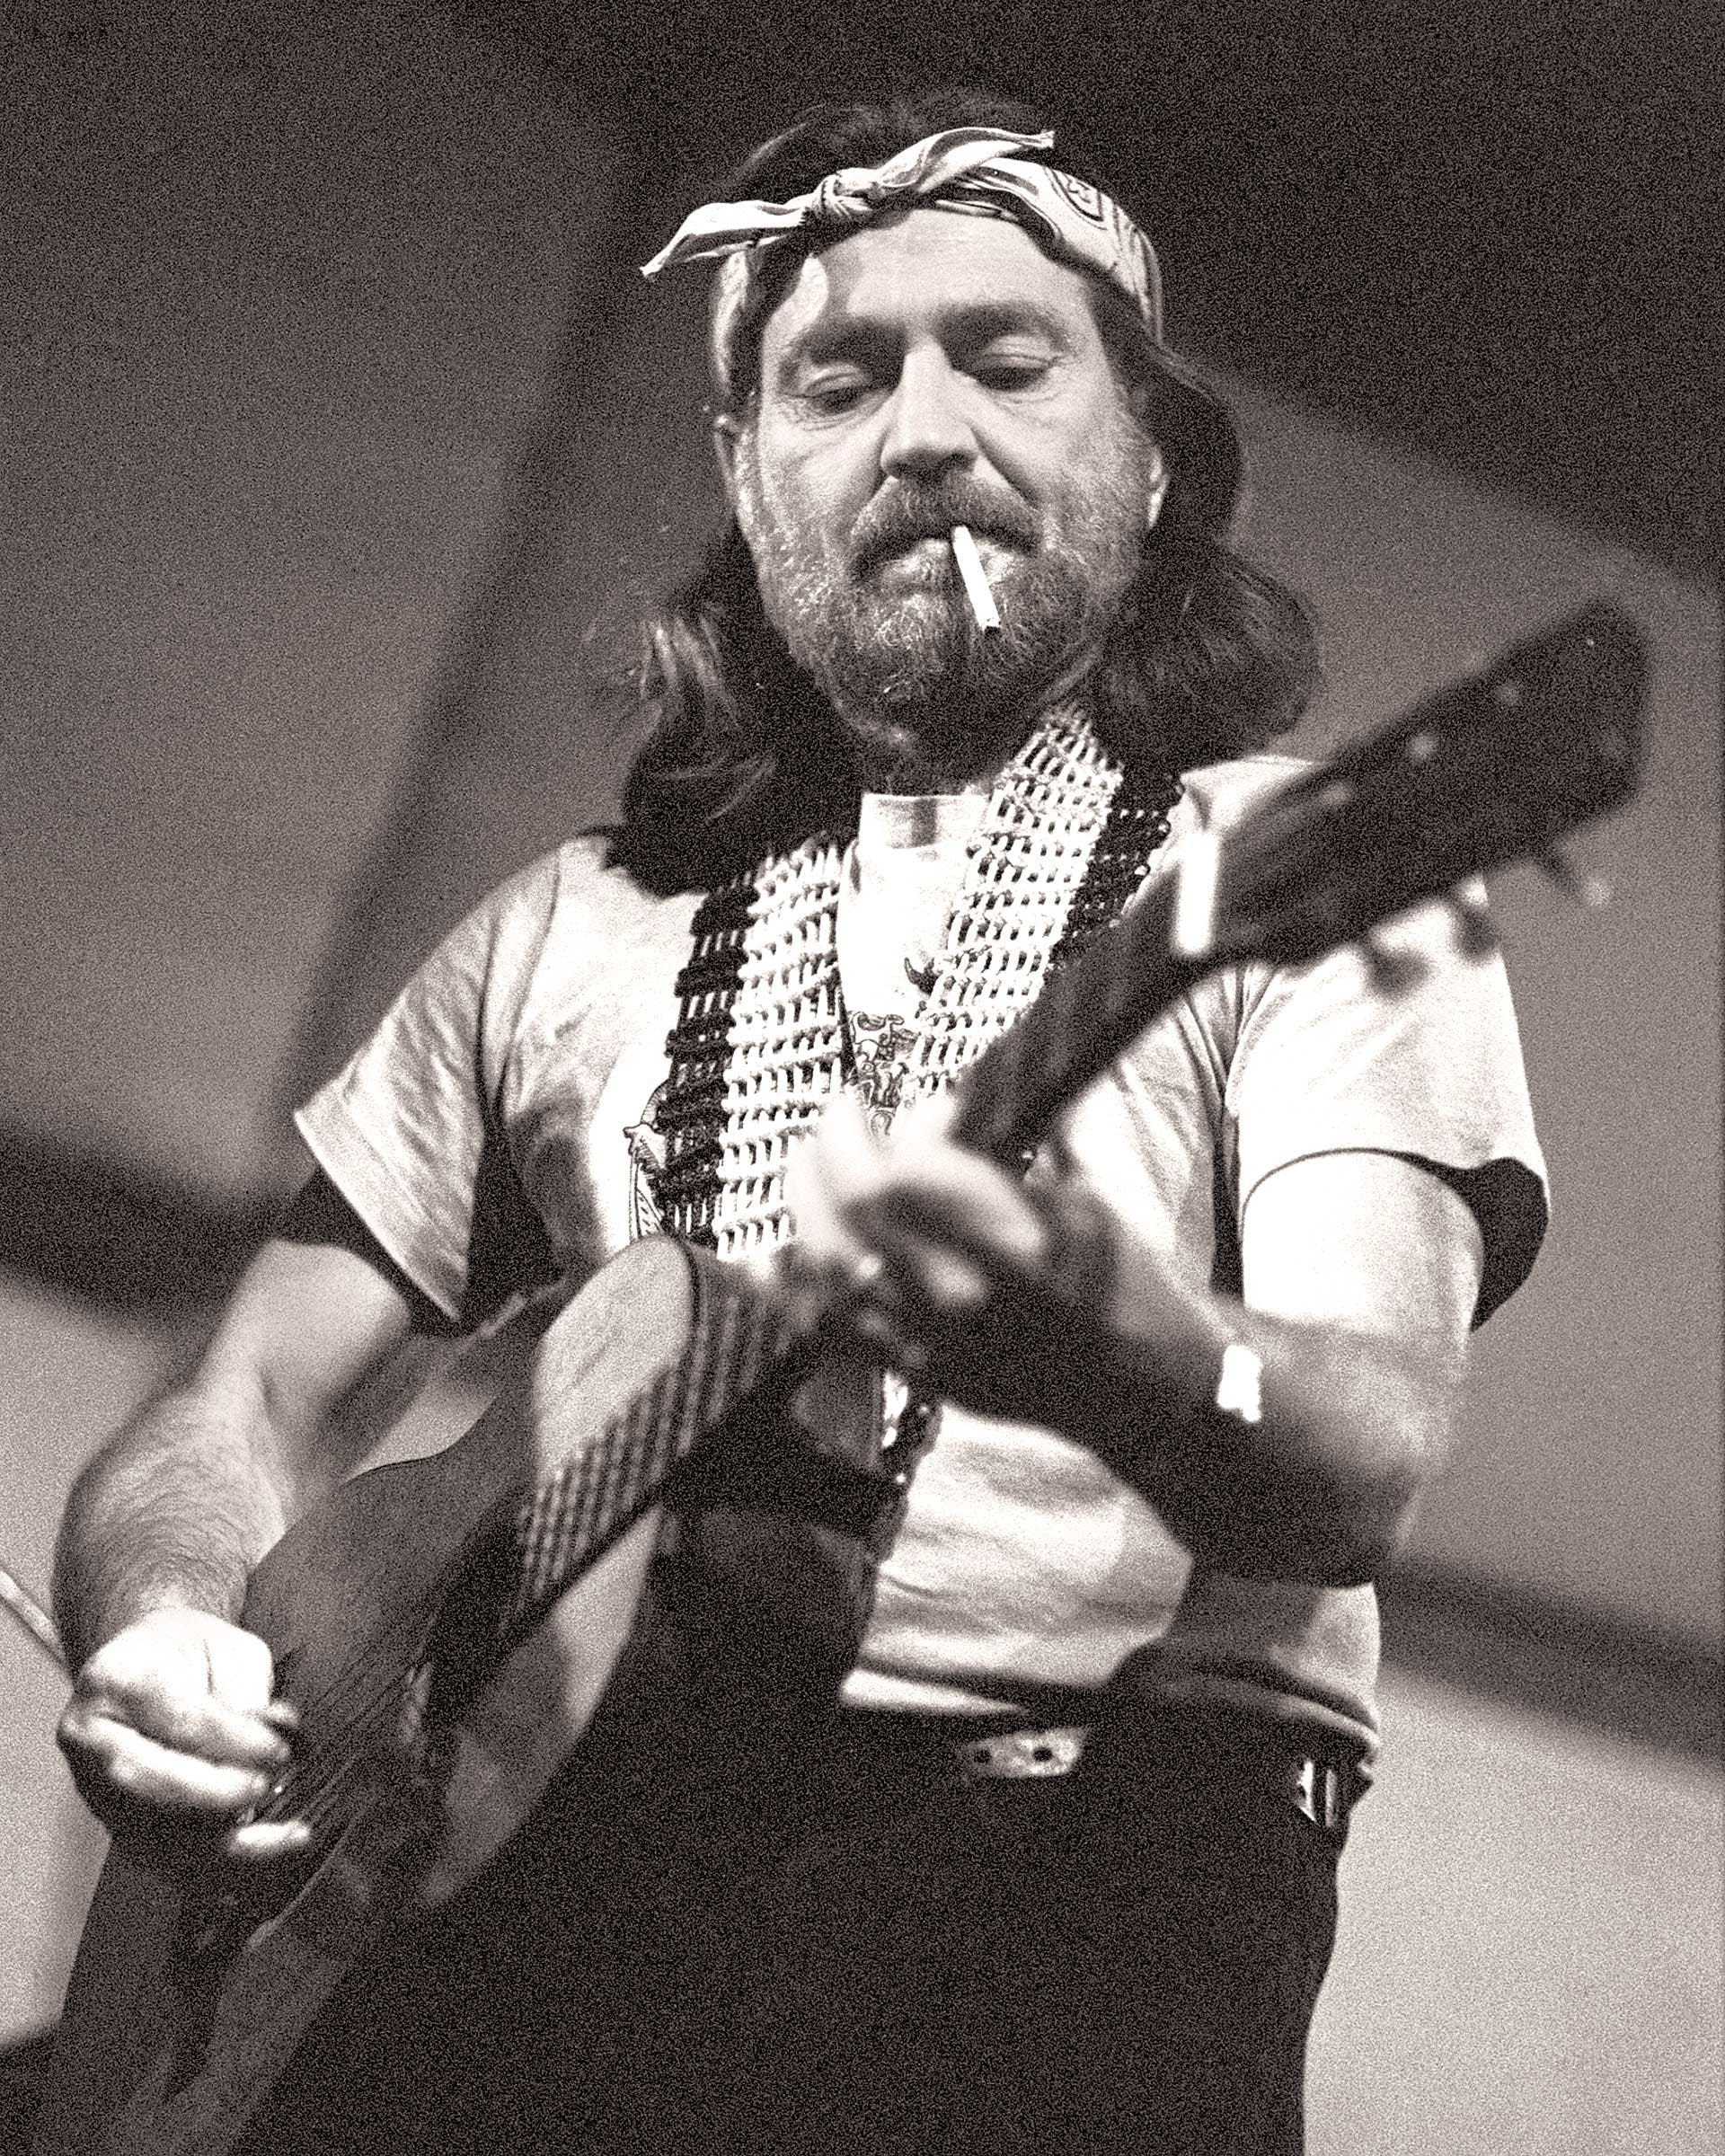 Willie at the Great Southeast Music Hall, in Atlanta, on October 27, 1975.